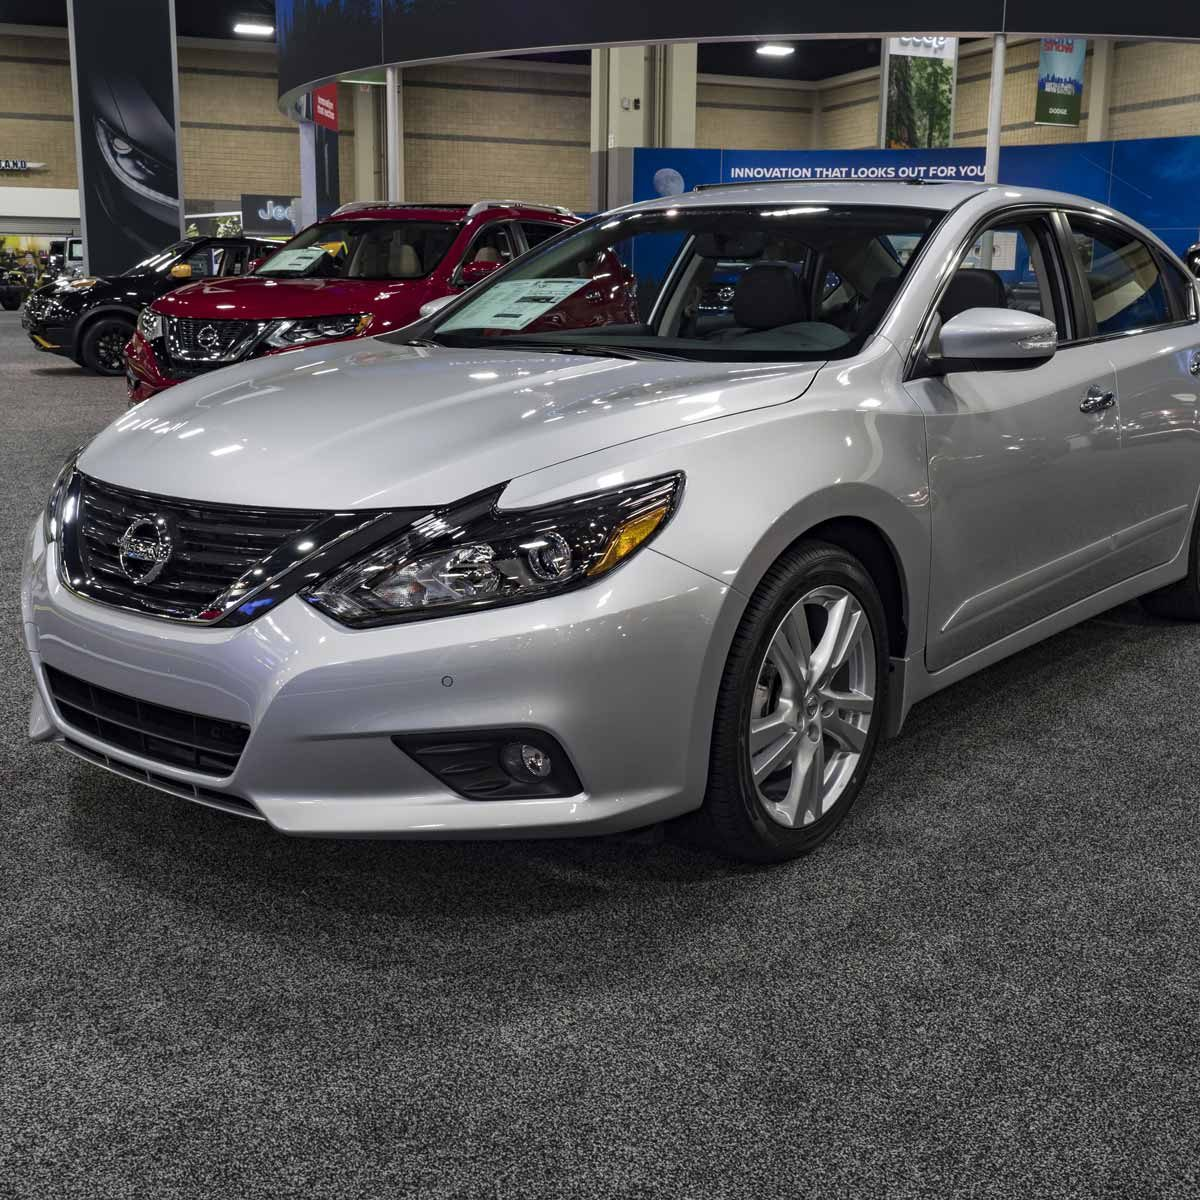 Nissan Altima on display during the 2016 Charlotte International Auto Show at the Charlotte Convention Center in downtown Charlotte.